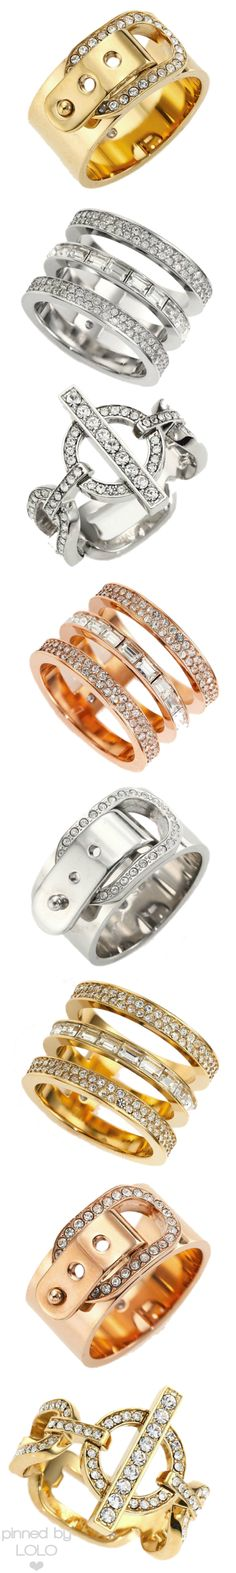 Michael Kors Assorted Rings | LOLO❤